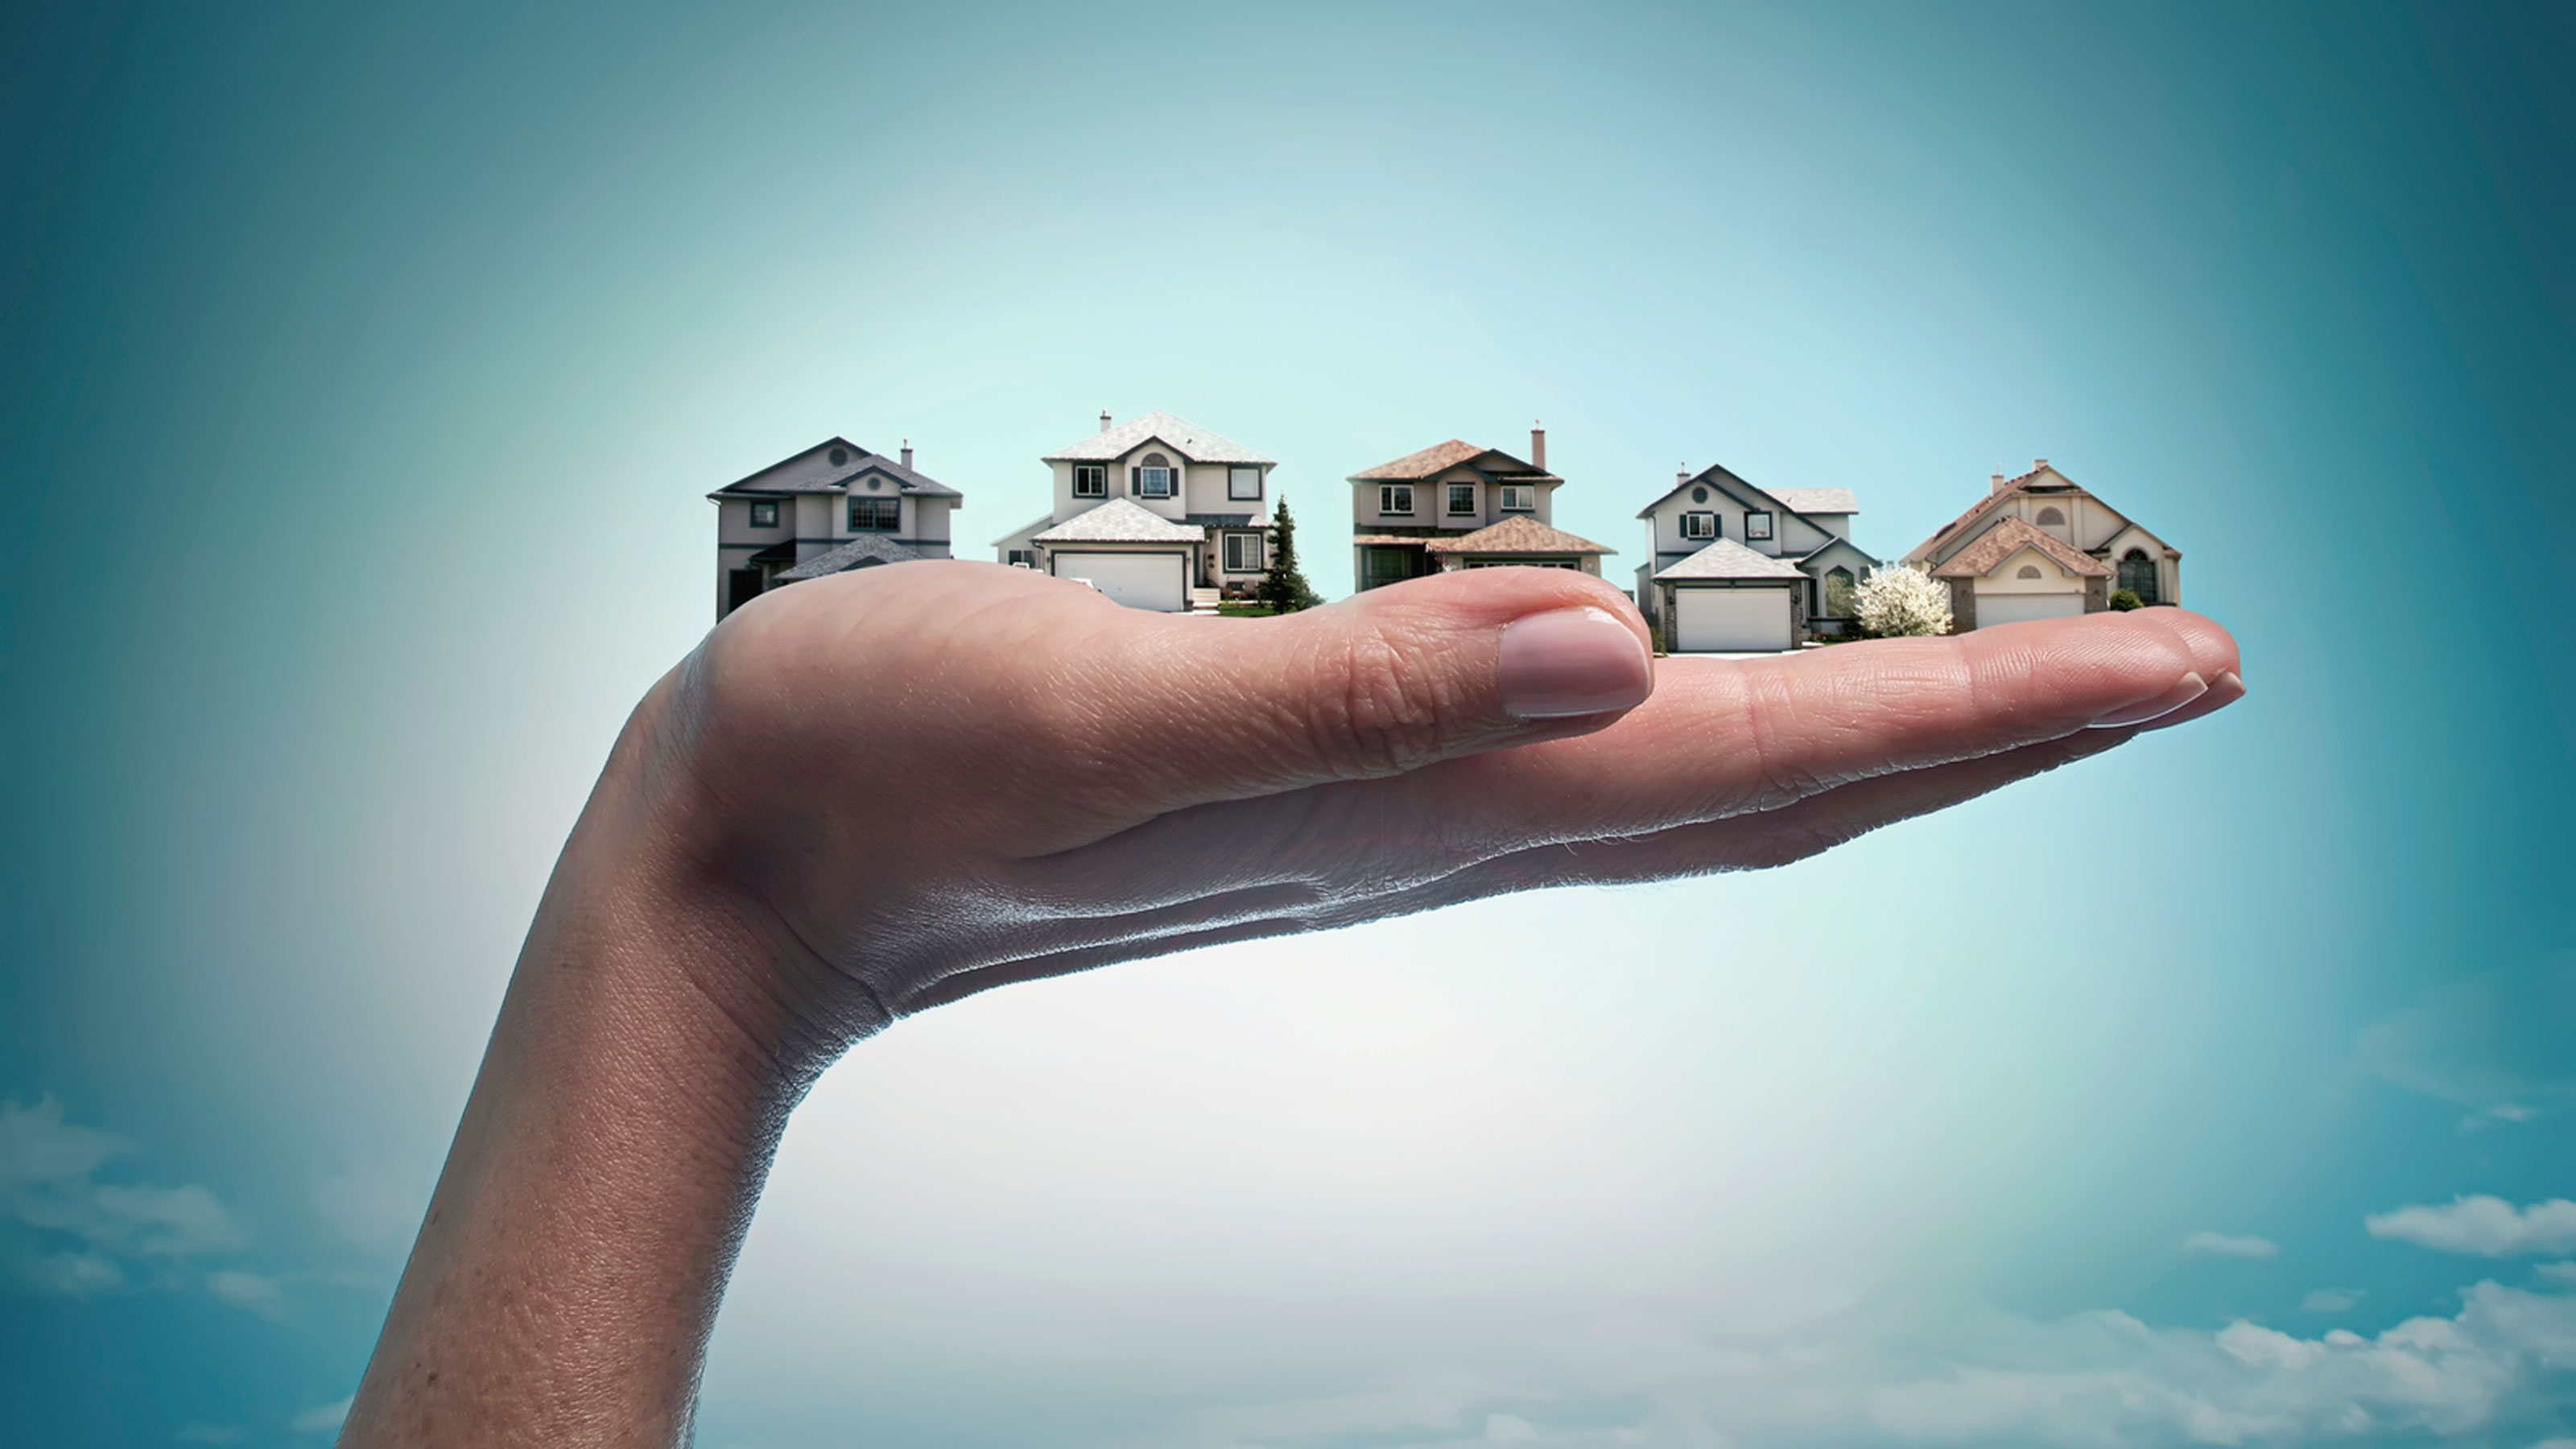 Real Estate Investing in 2021 Comes Down to 5 'Un' Words | Kiplinger